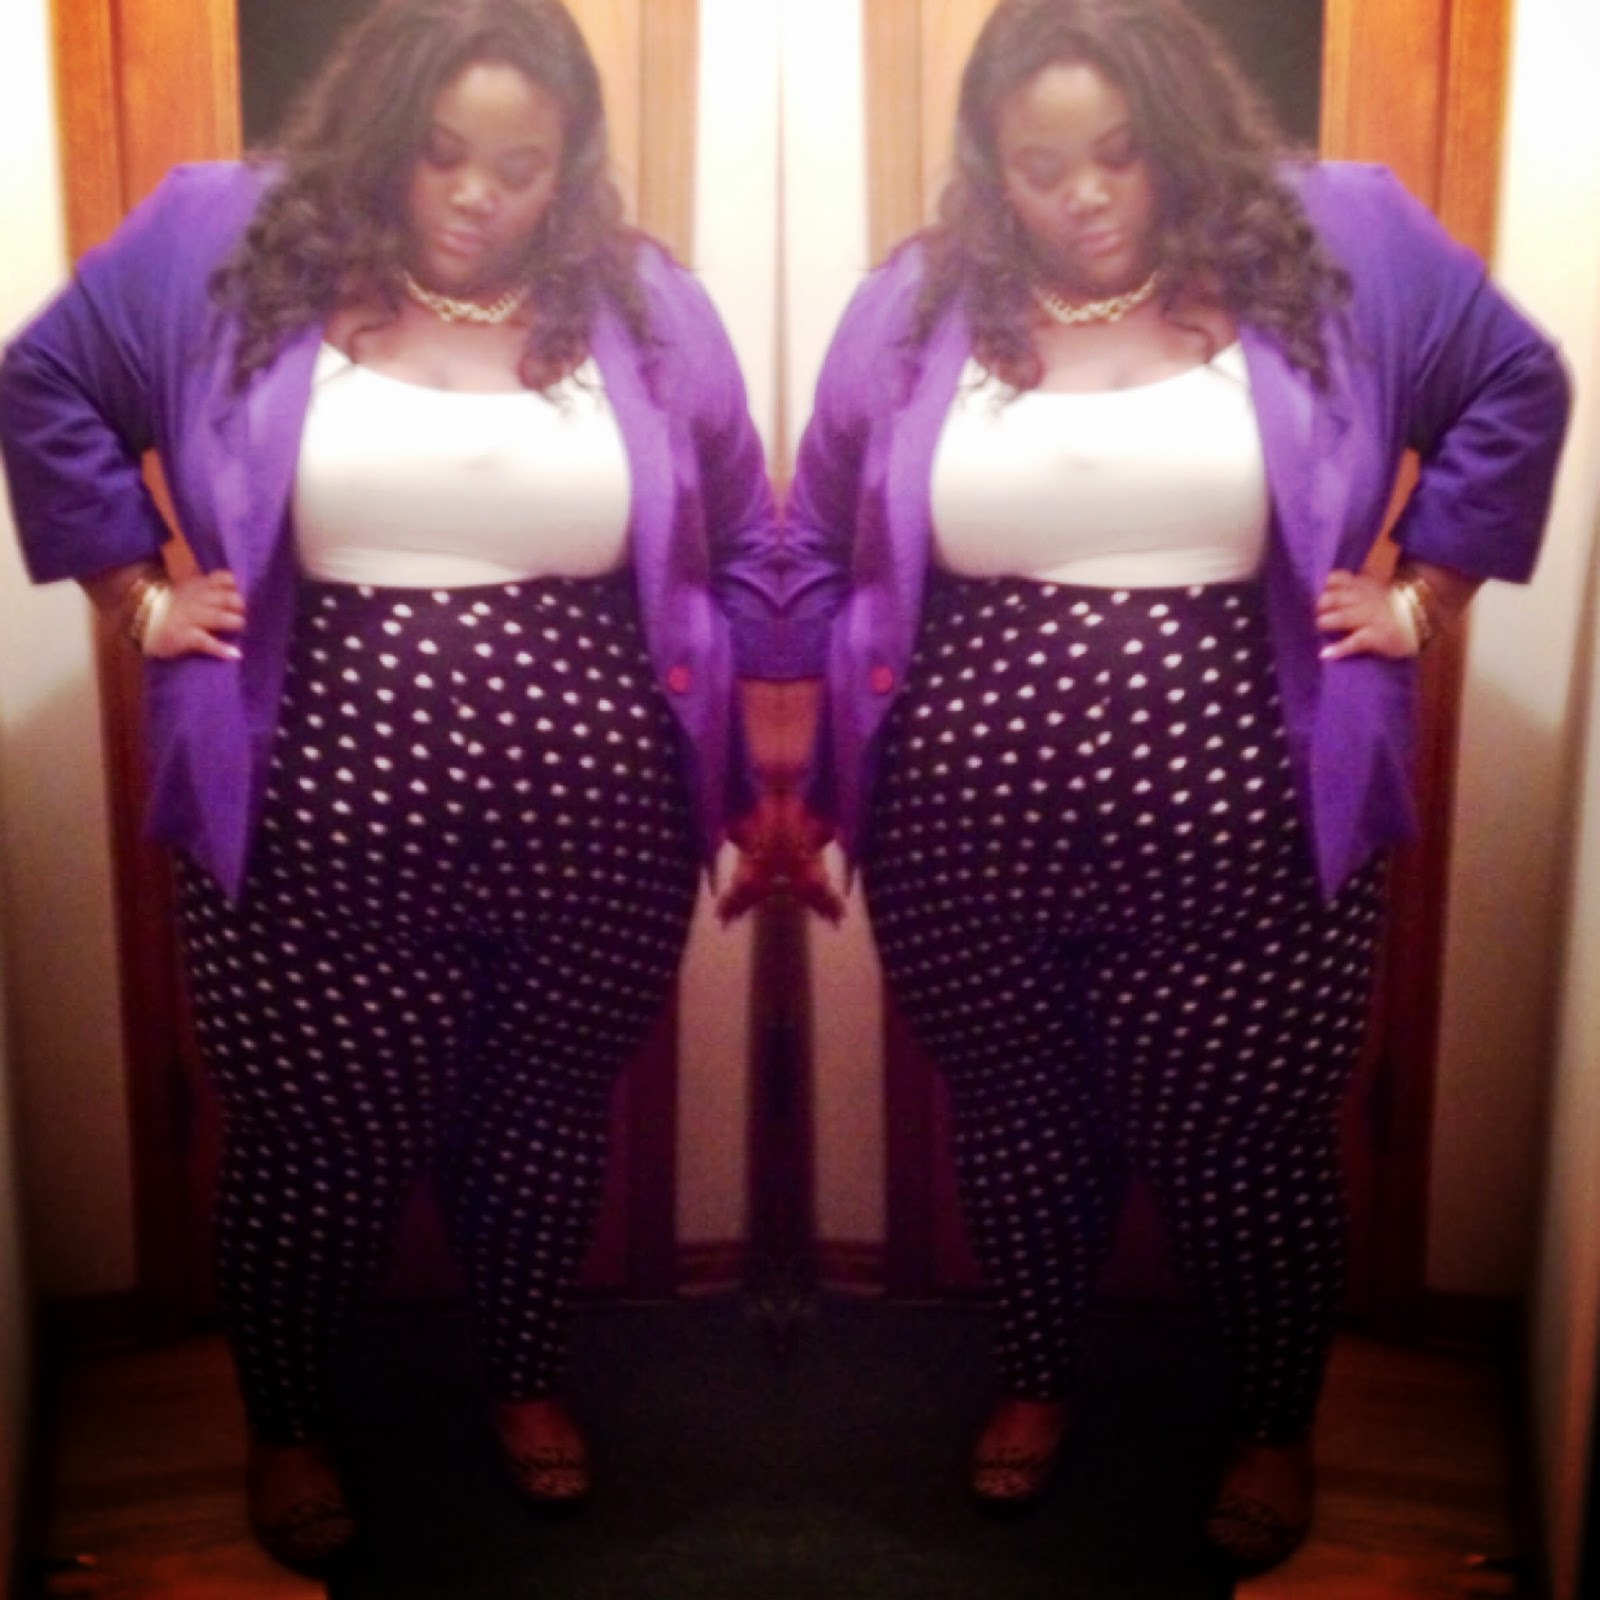 plus size girl in a close minded world: she is back!! pop of color